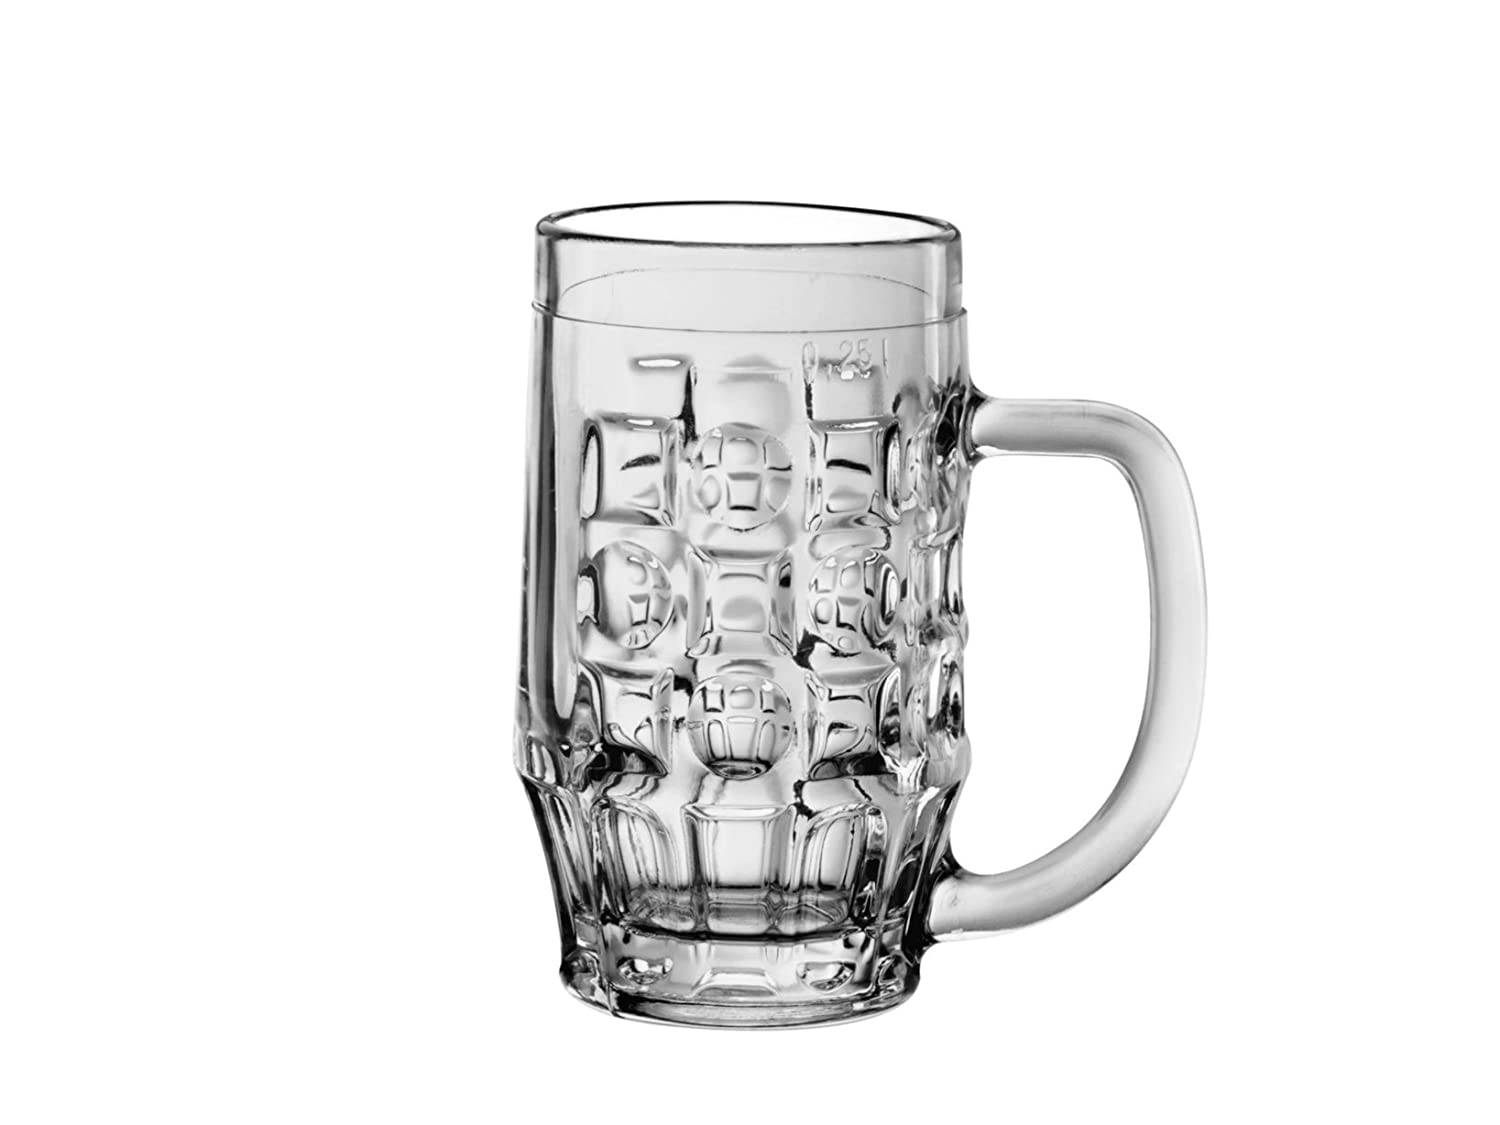 Bormioli Rocco Malles beer mug 325ml, with filling mark at 250ml, pack of 6 1